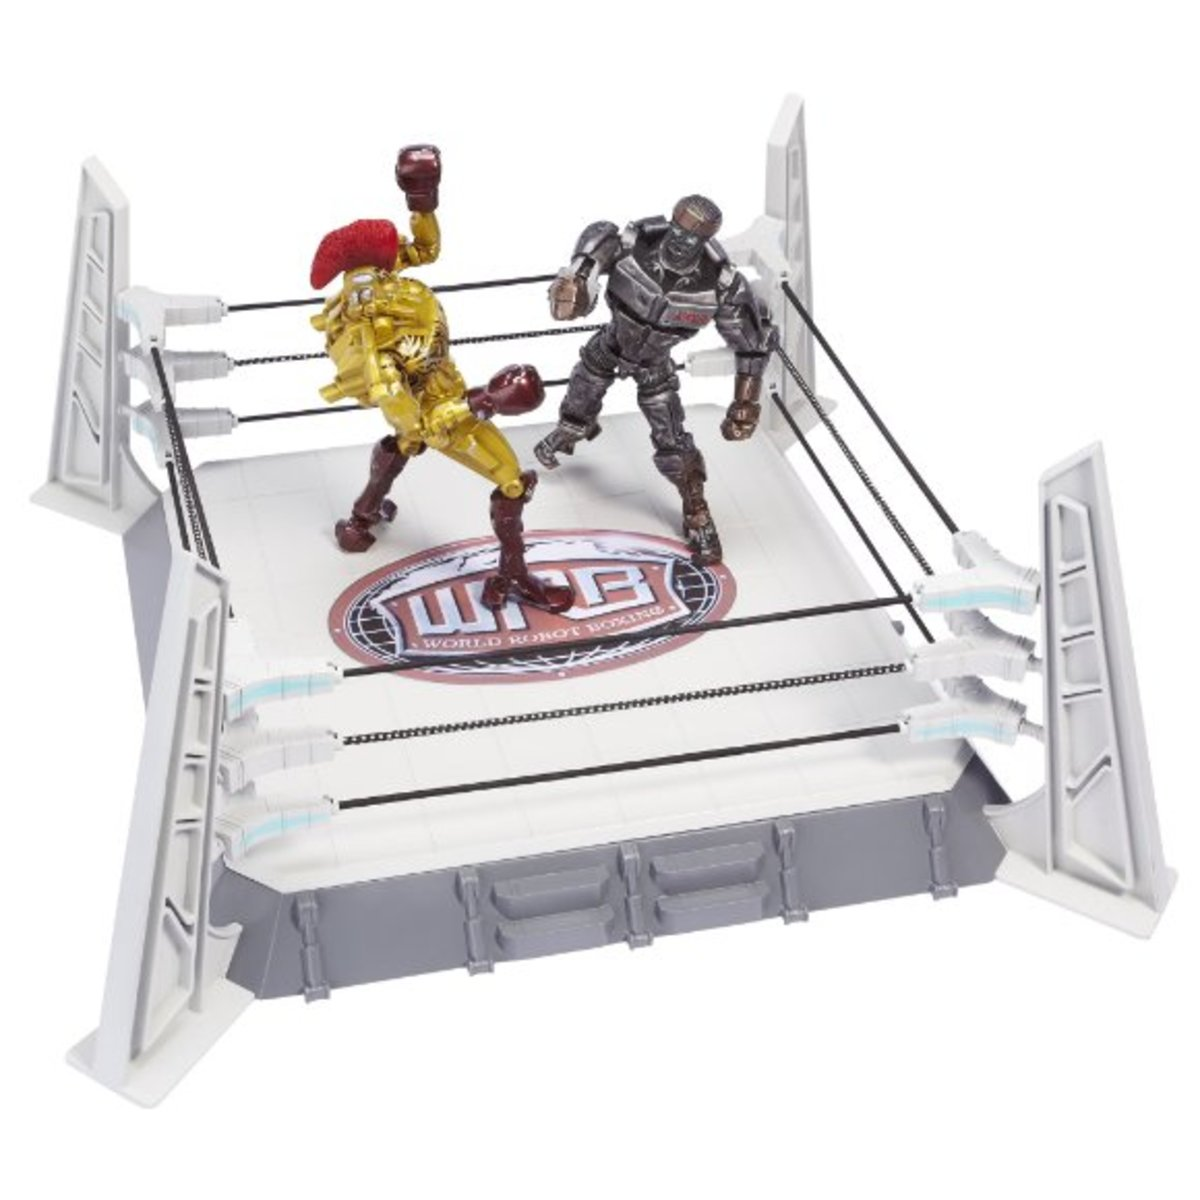 Are you ready for Roooooboooooooooot Boxinnnnnnnnnng? And in this corner is Midas, ...fighting against Atom - the new robot in the boxing league. (Robot figures sold separately)